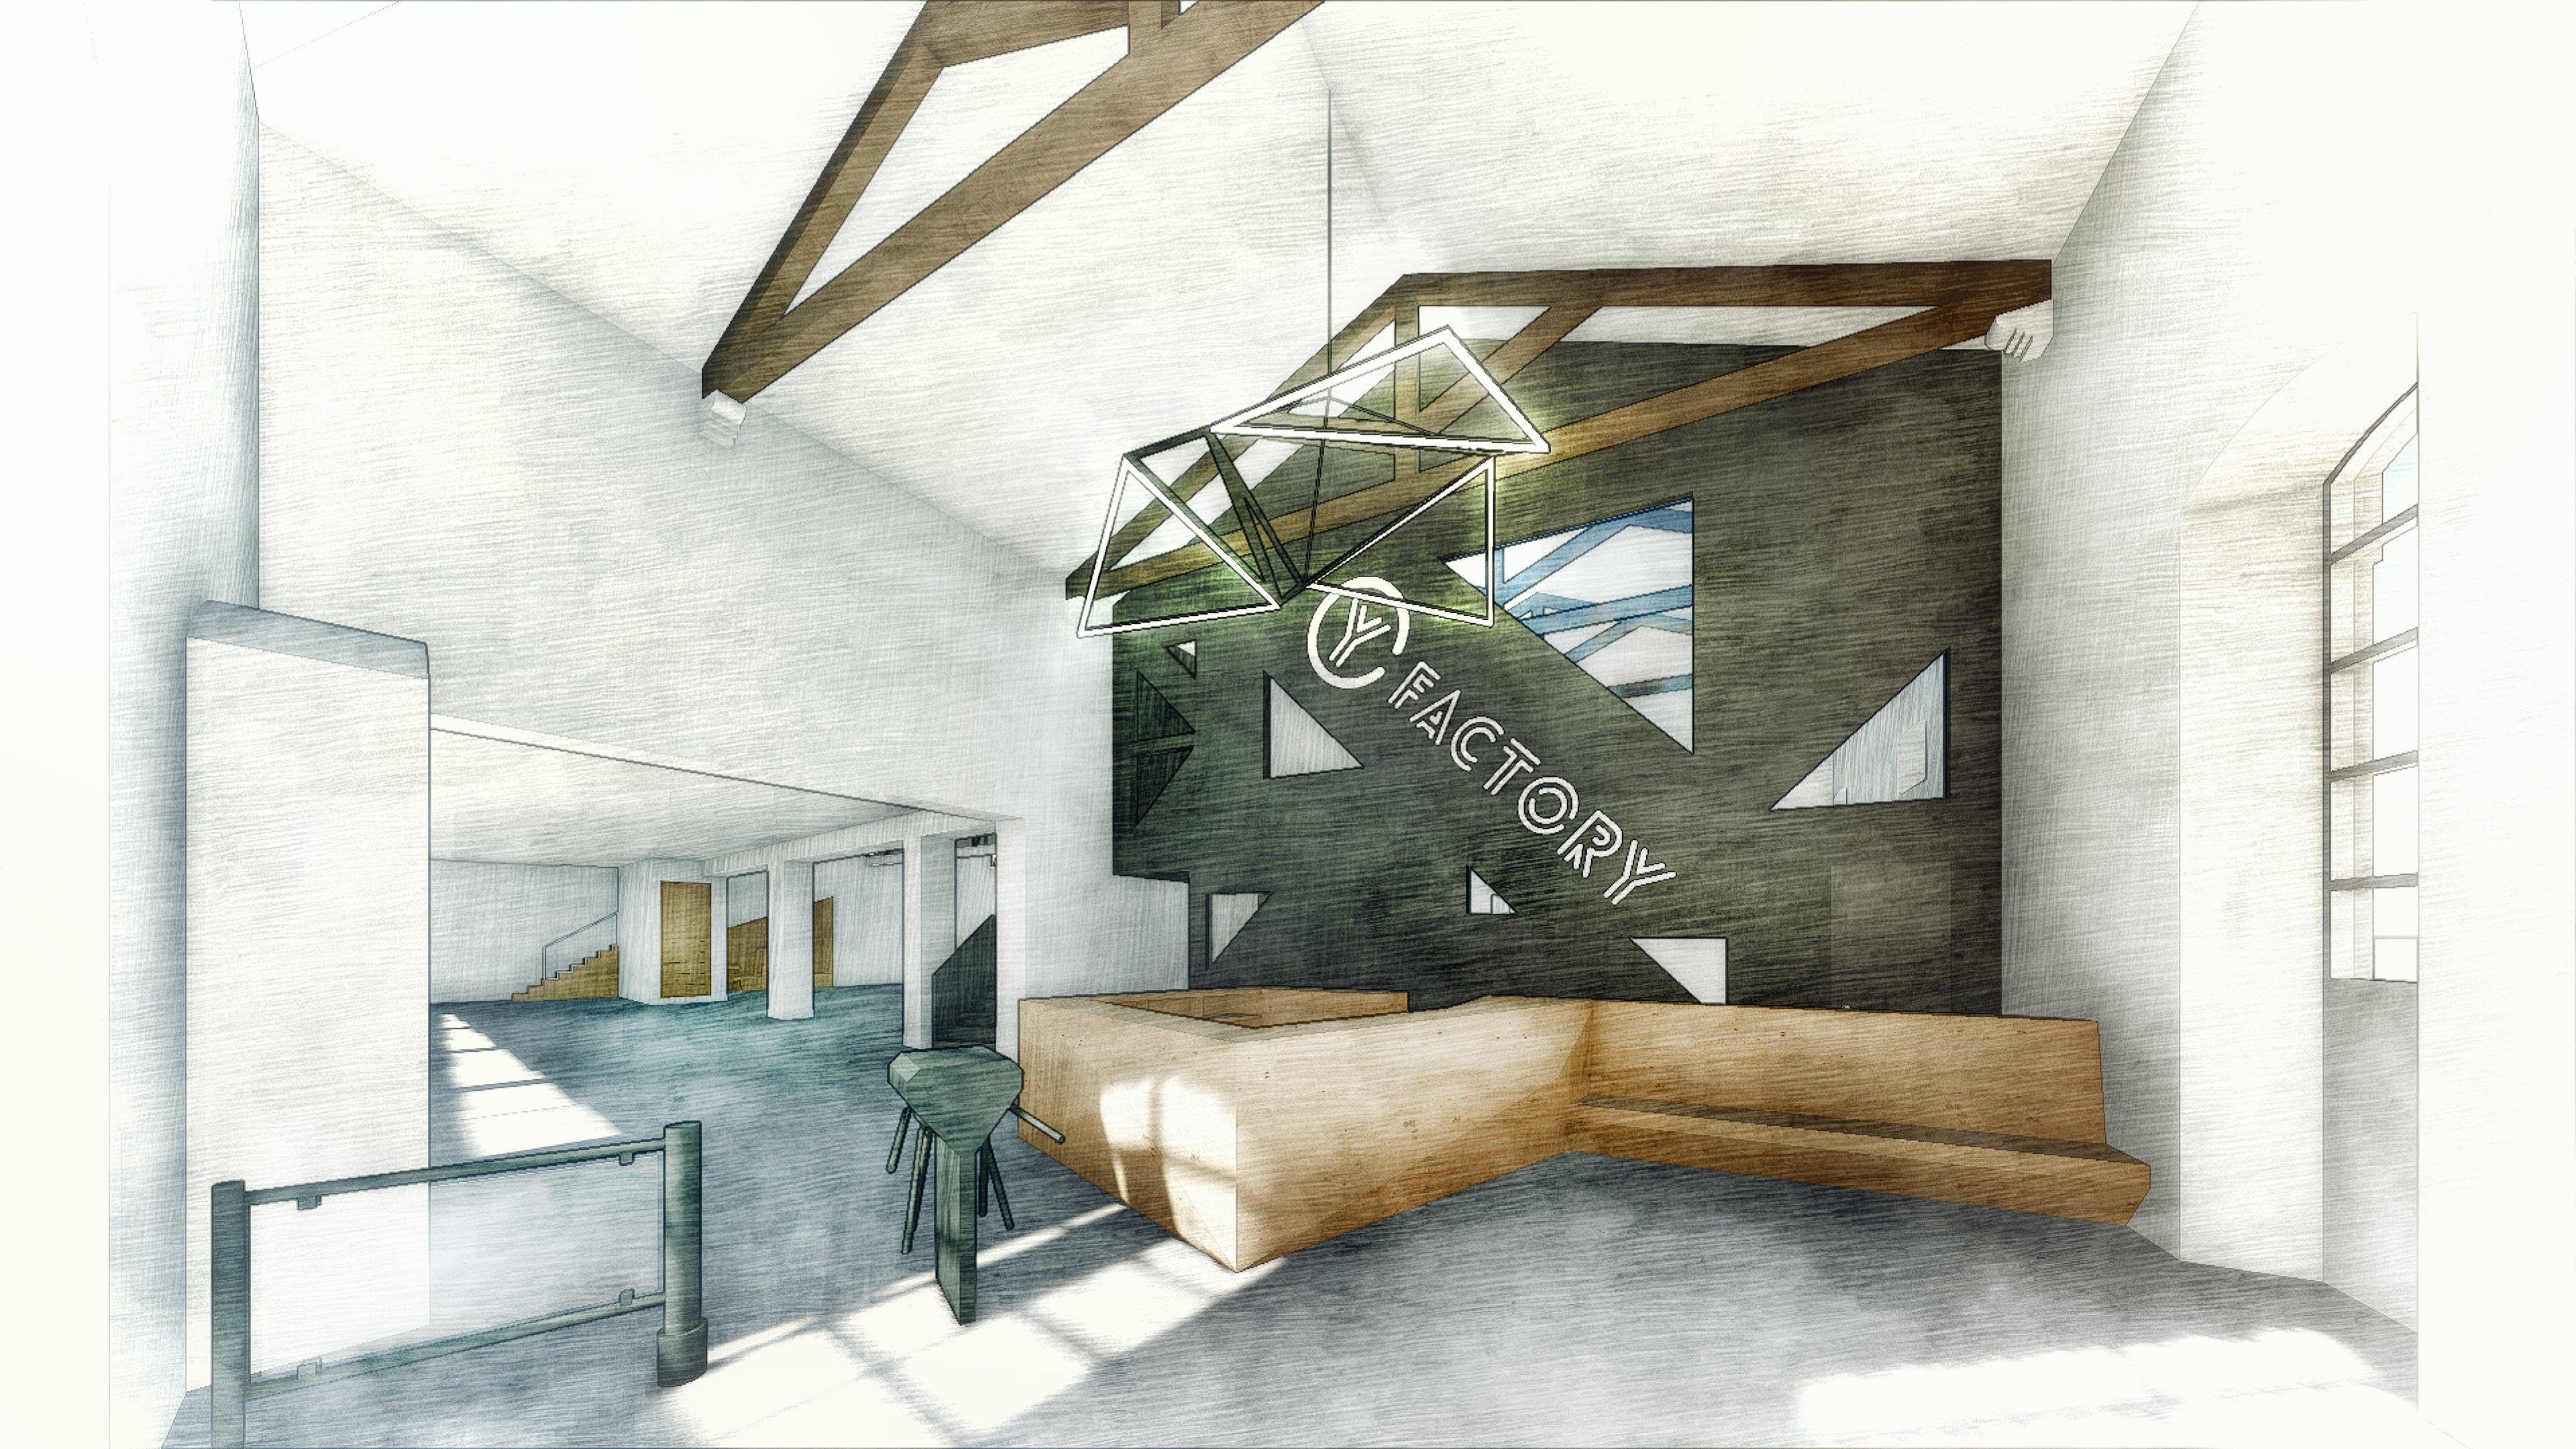 Noz arquitectura architecture gym fitness factory